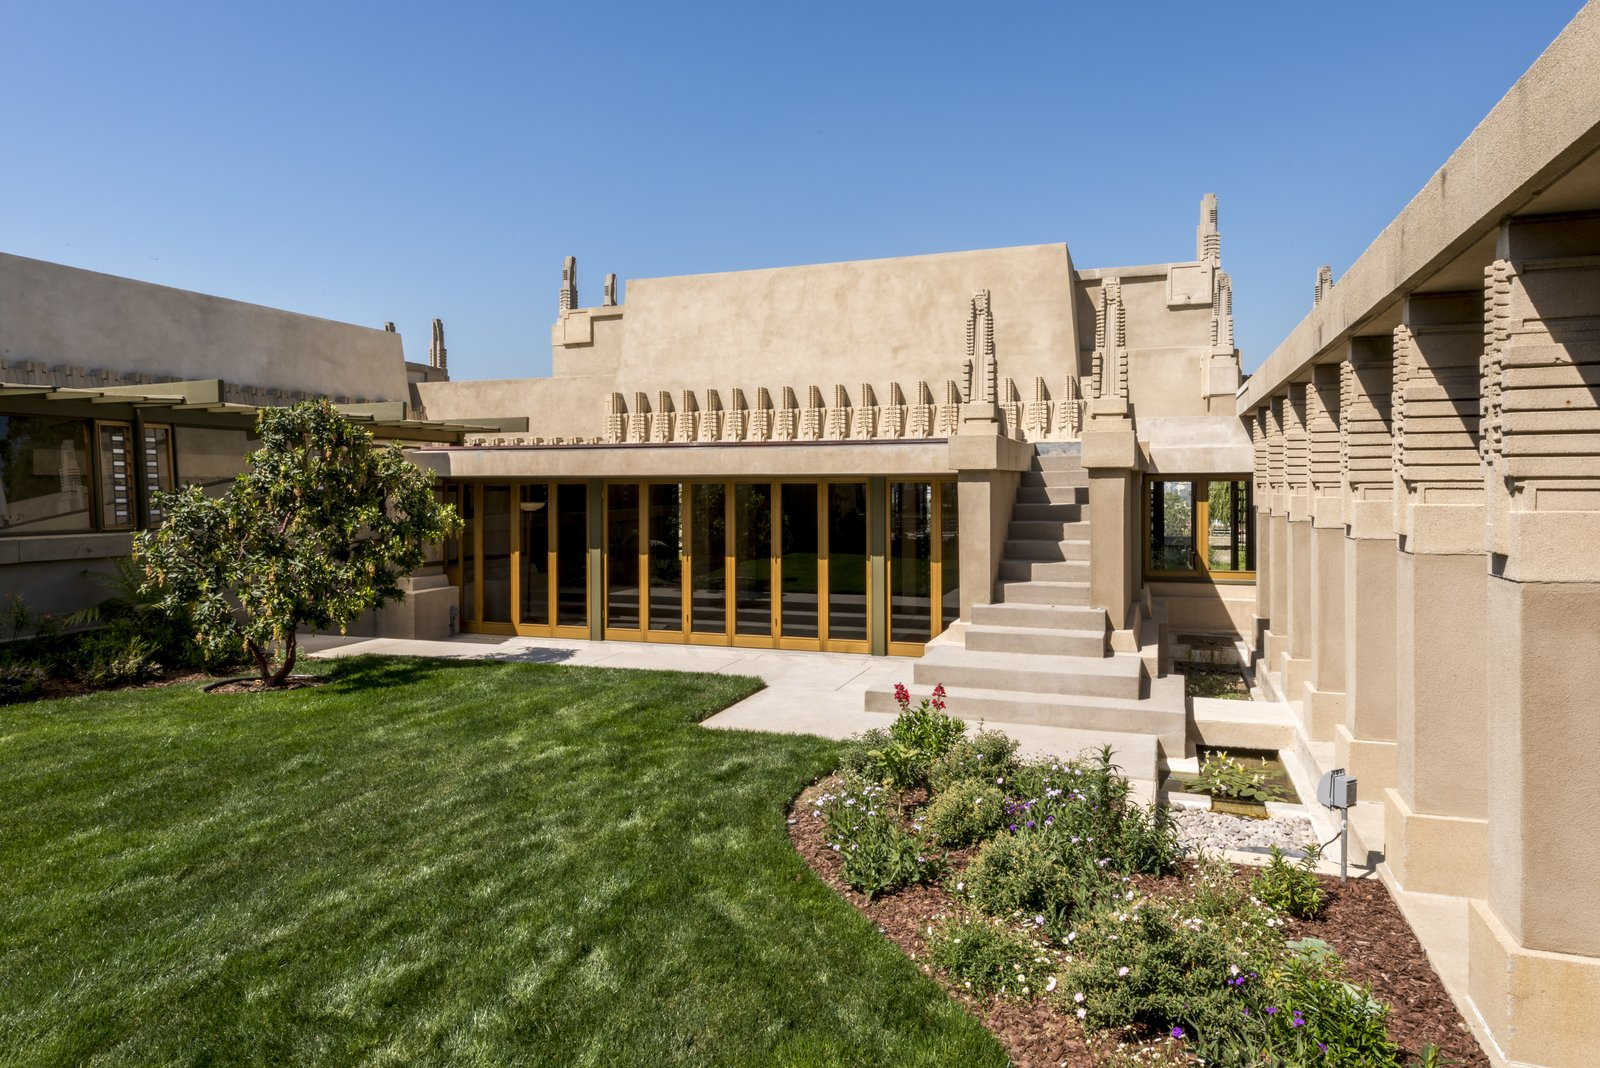 Frank Lloyd Wright's first Los Angeles project, Hollyhock House, received a meticulous repair and $4.3 million restoration, reflecting a major achievement for the City of Los Angeles and strong civic stewardship. 7 Preserved Modern Architecture Icons in Los Angeles - Photo 3 of 7